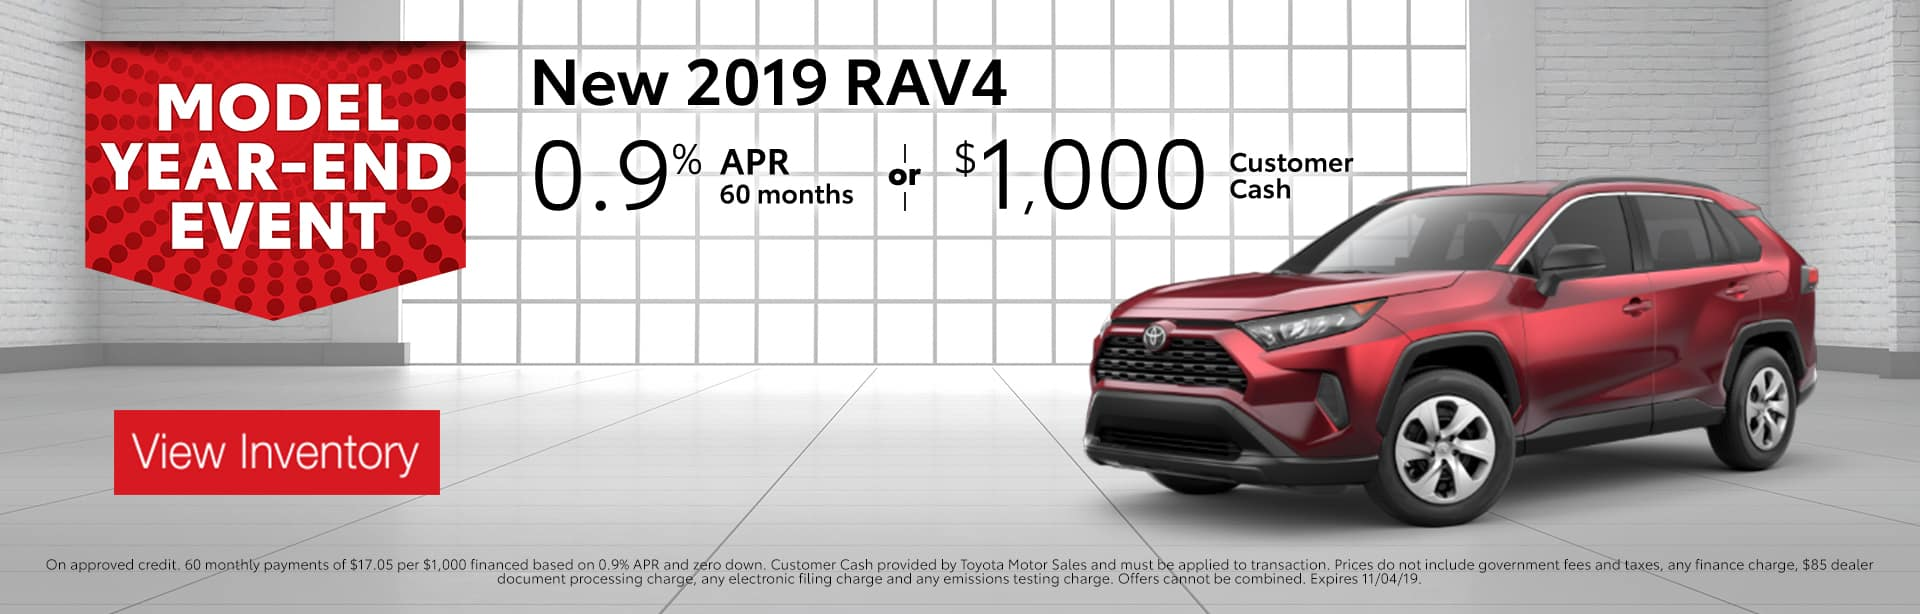 Toyota Dealers Phoenix >> Toyota Dealers Phoenix Best Upcoming Car Release 2020